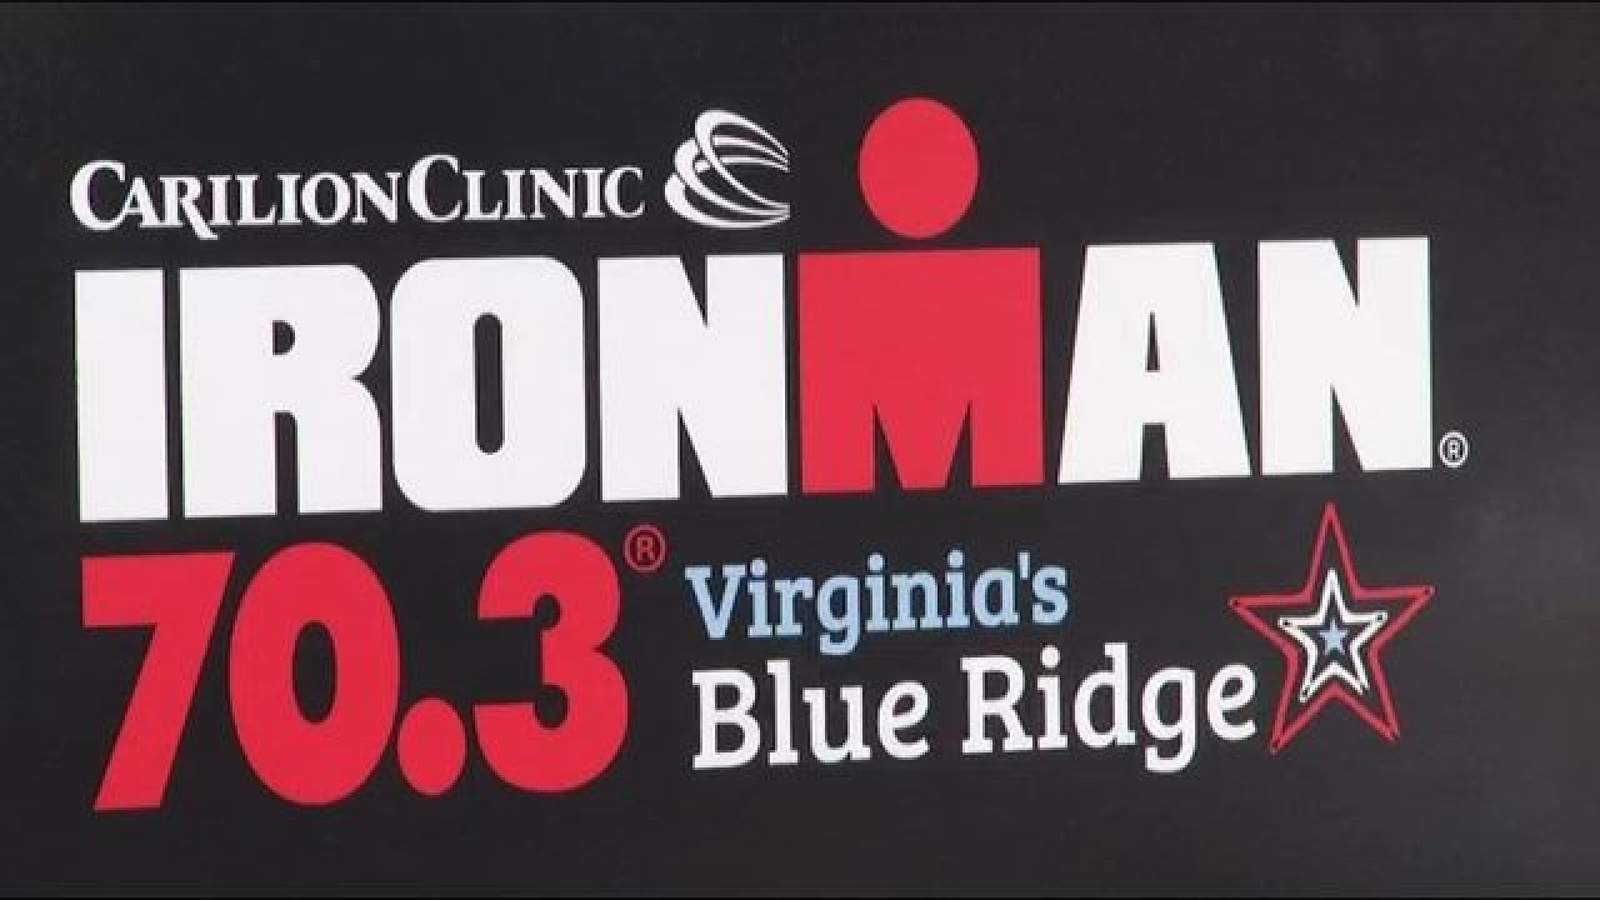 Carilion Clinic Ironman calling for 1,500 volunteers